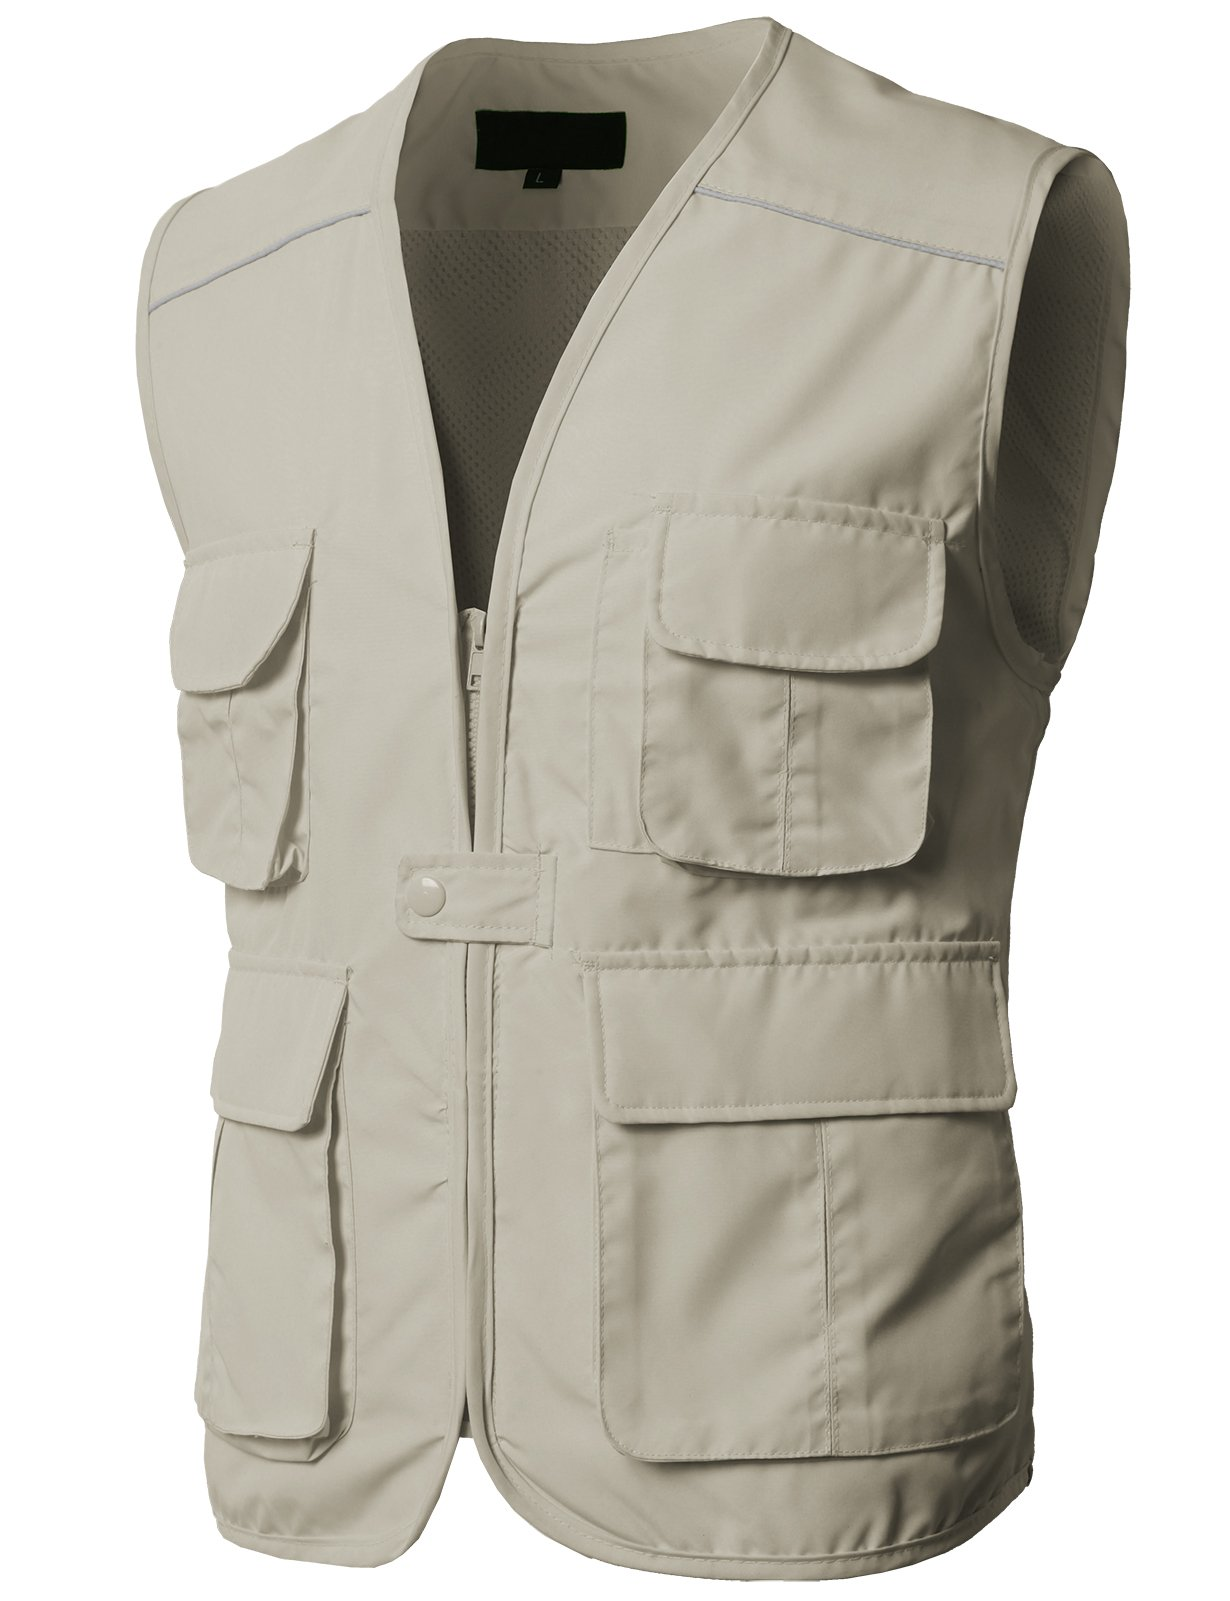 H2H Mens Casual Work Utility Hunting Travels Sports Vest with Multiple Pockets